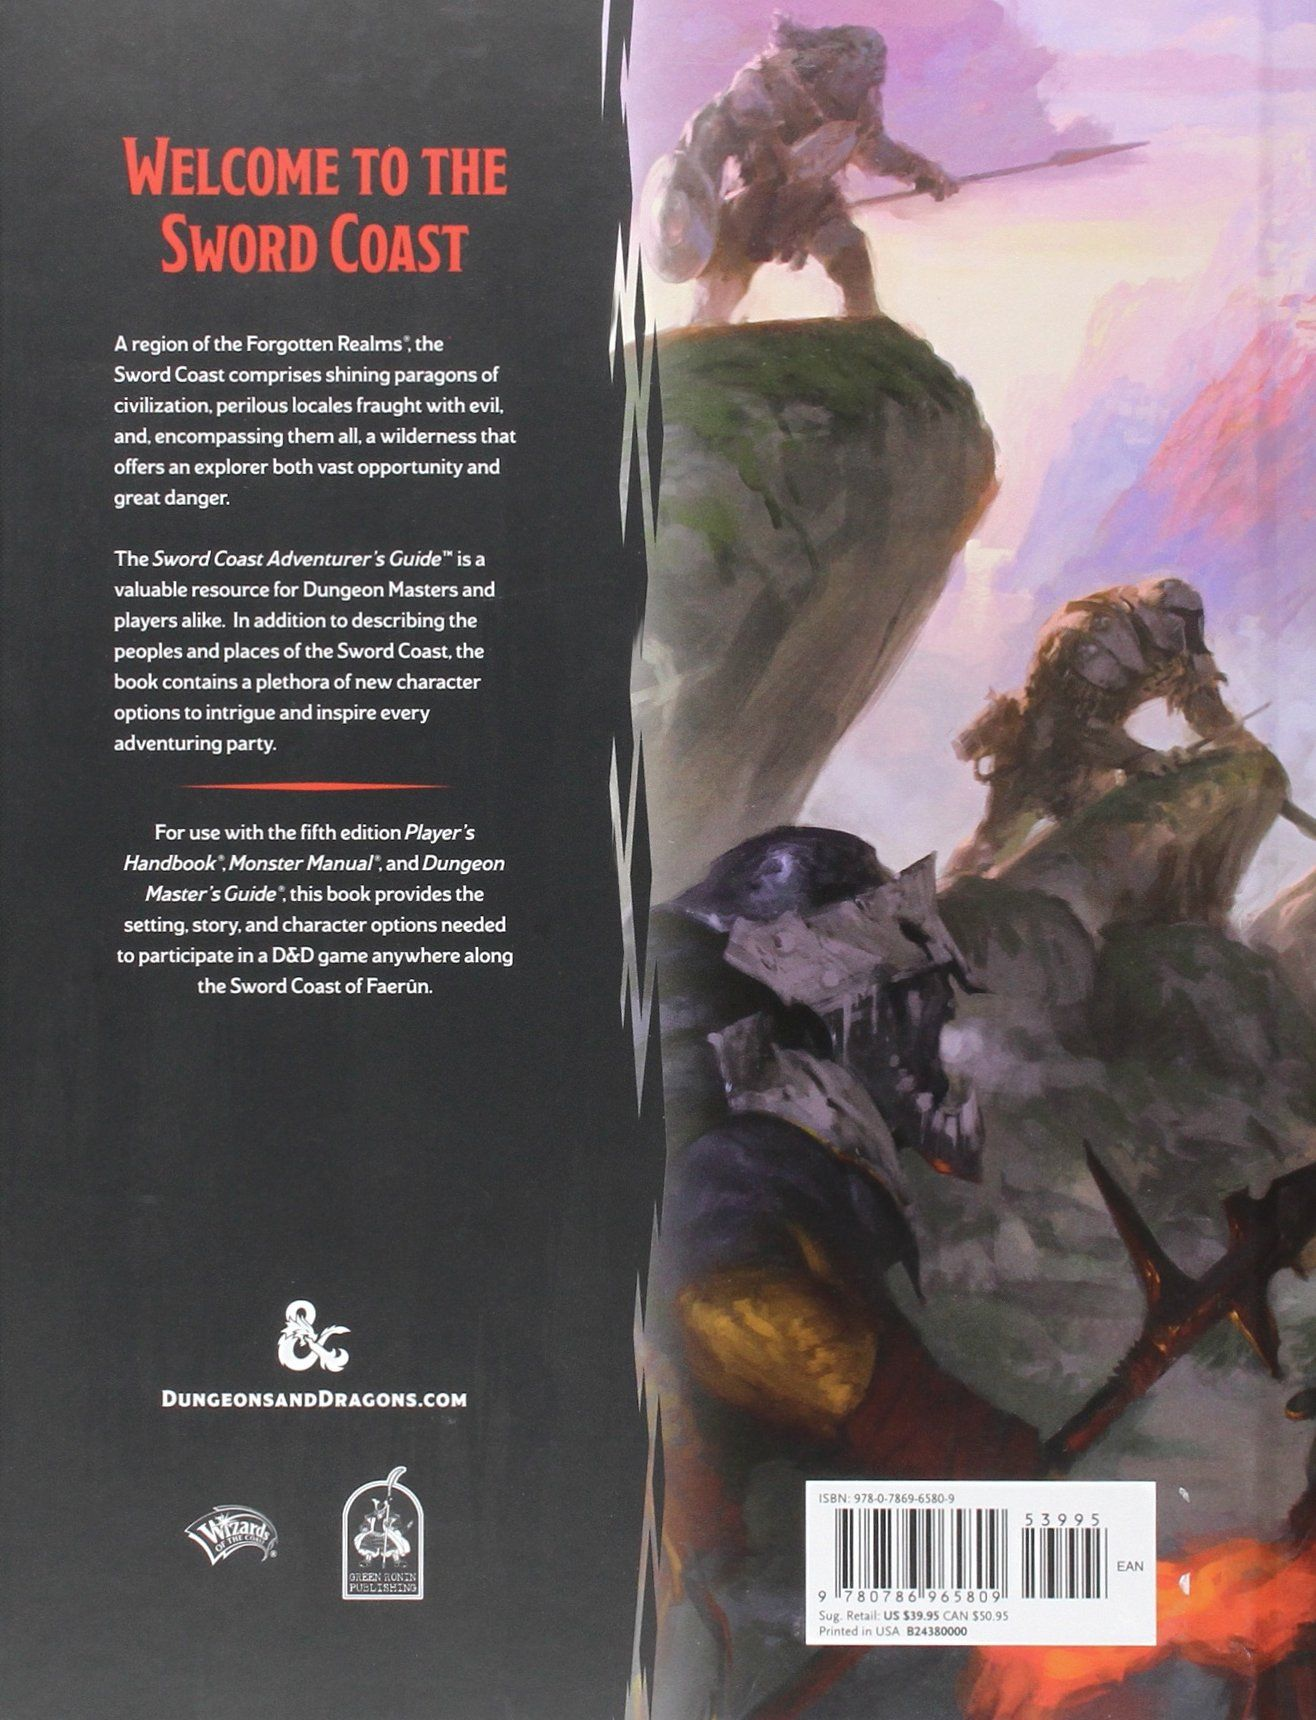 Sword Coast Adventurer's Guide - back | Book cover and interior art for  Dungeons and Dragons Next (5.0) - Dungeons & Dragons, D&D, DND, 5.0, 5th  Edition, ...